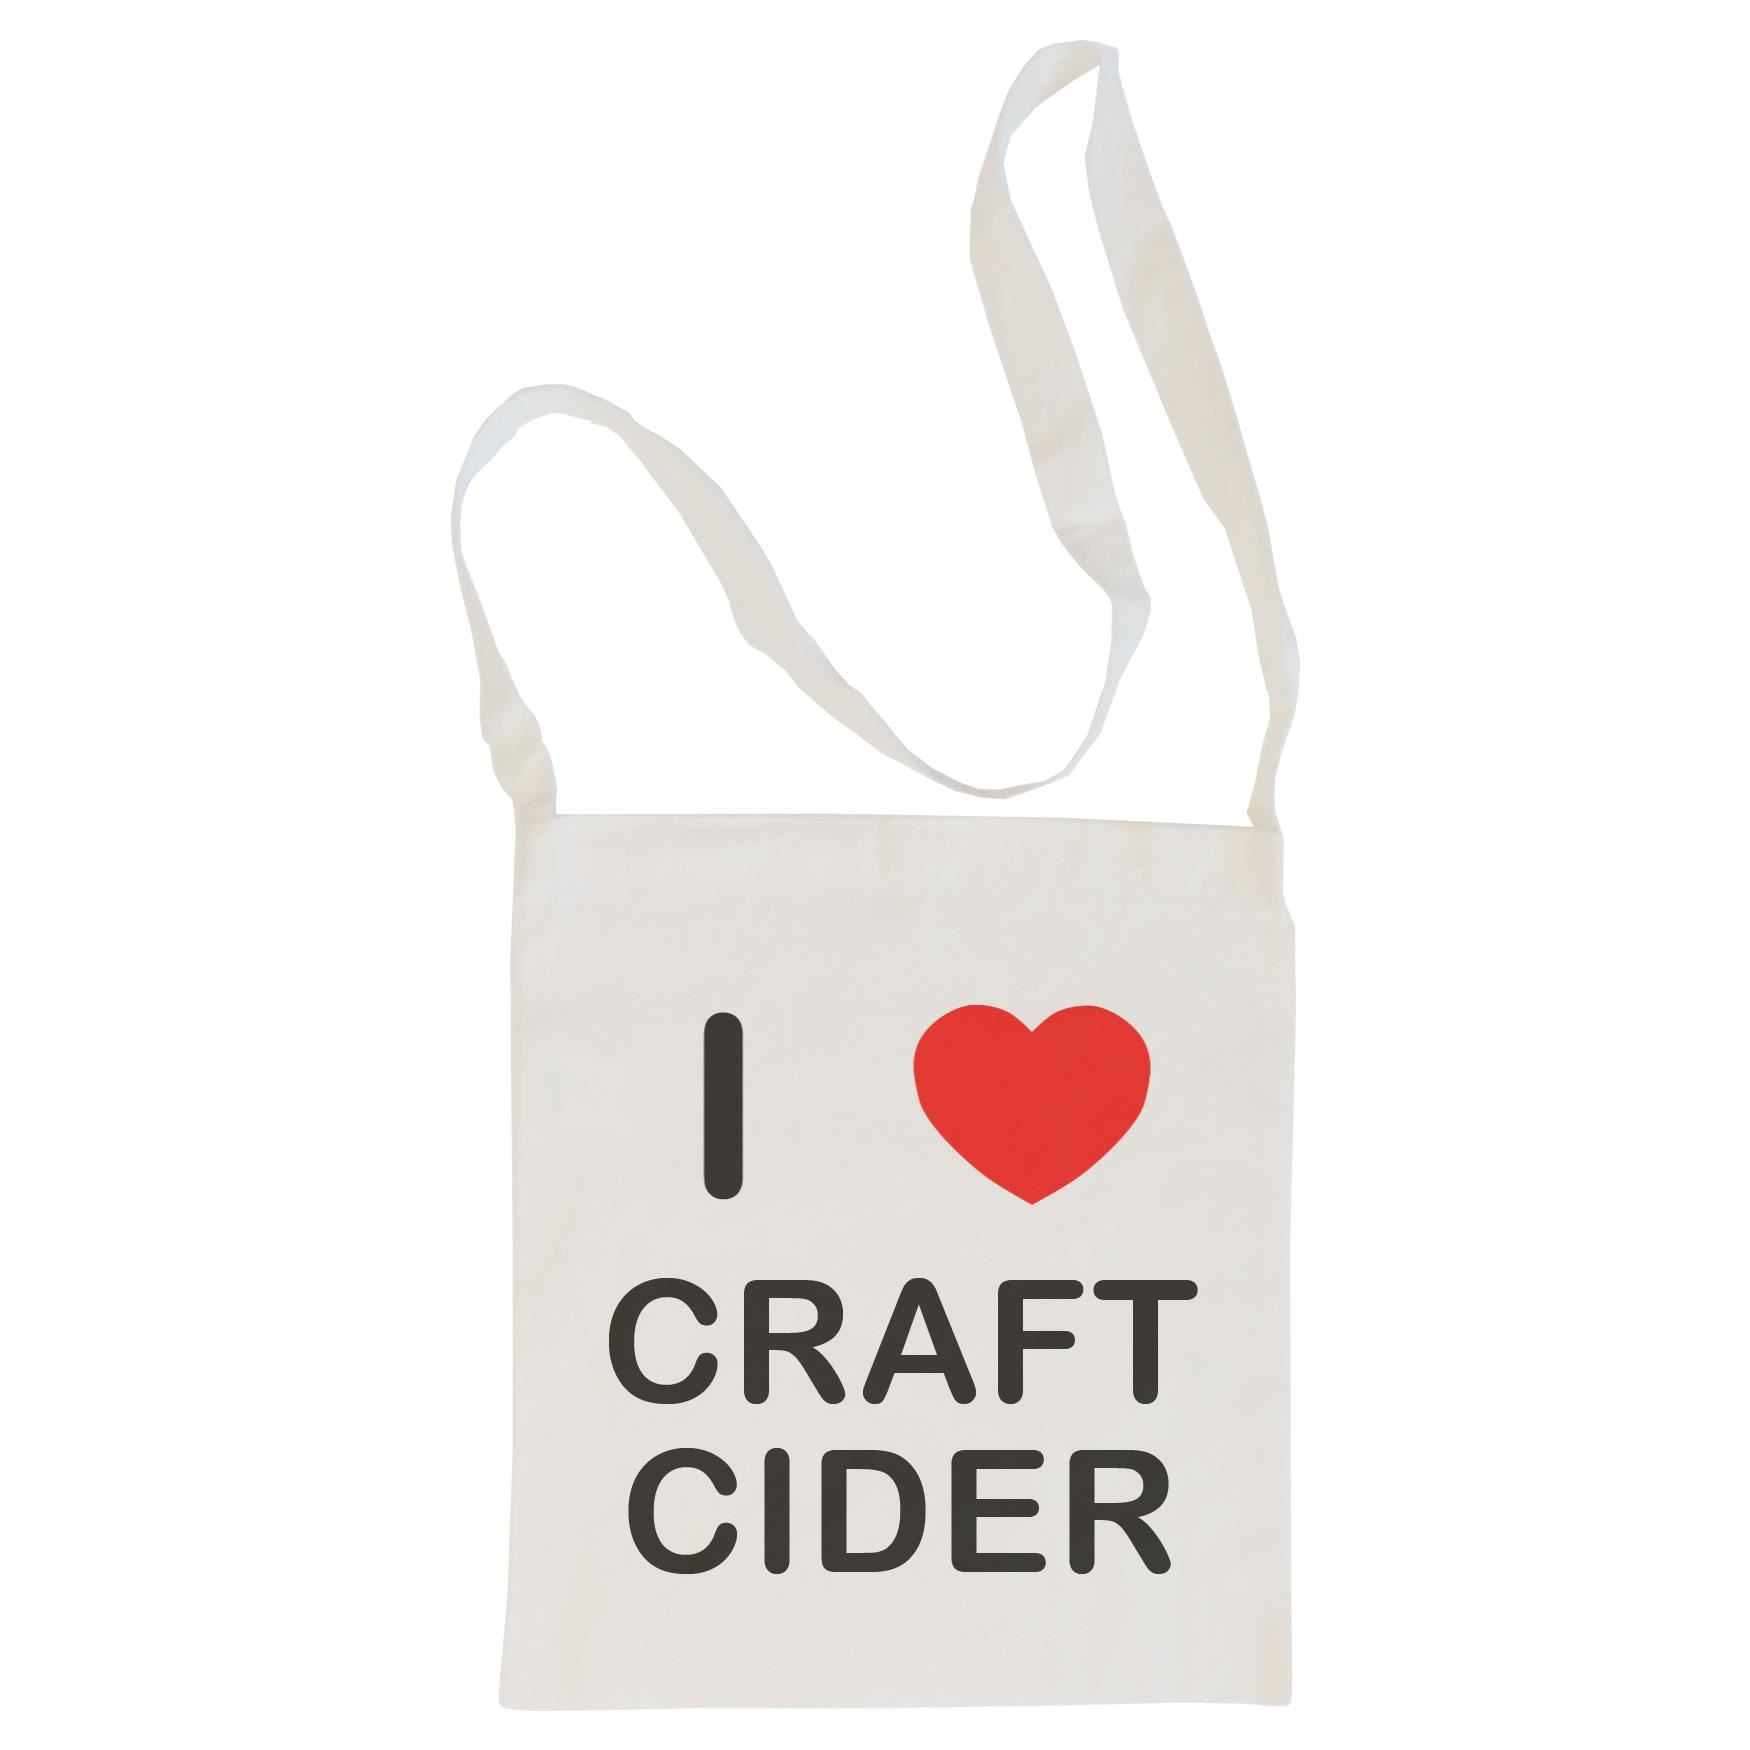 I Love Craft Cider - Cotton Bag | Size choice Tote, Shopper or Sling